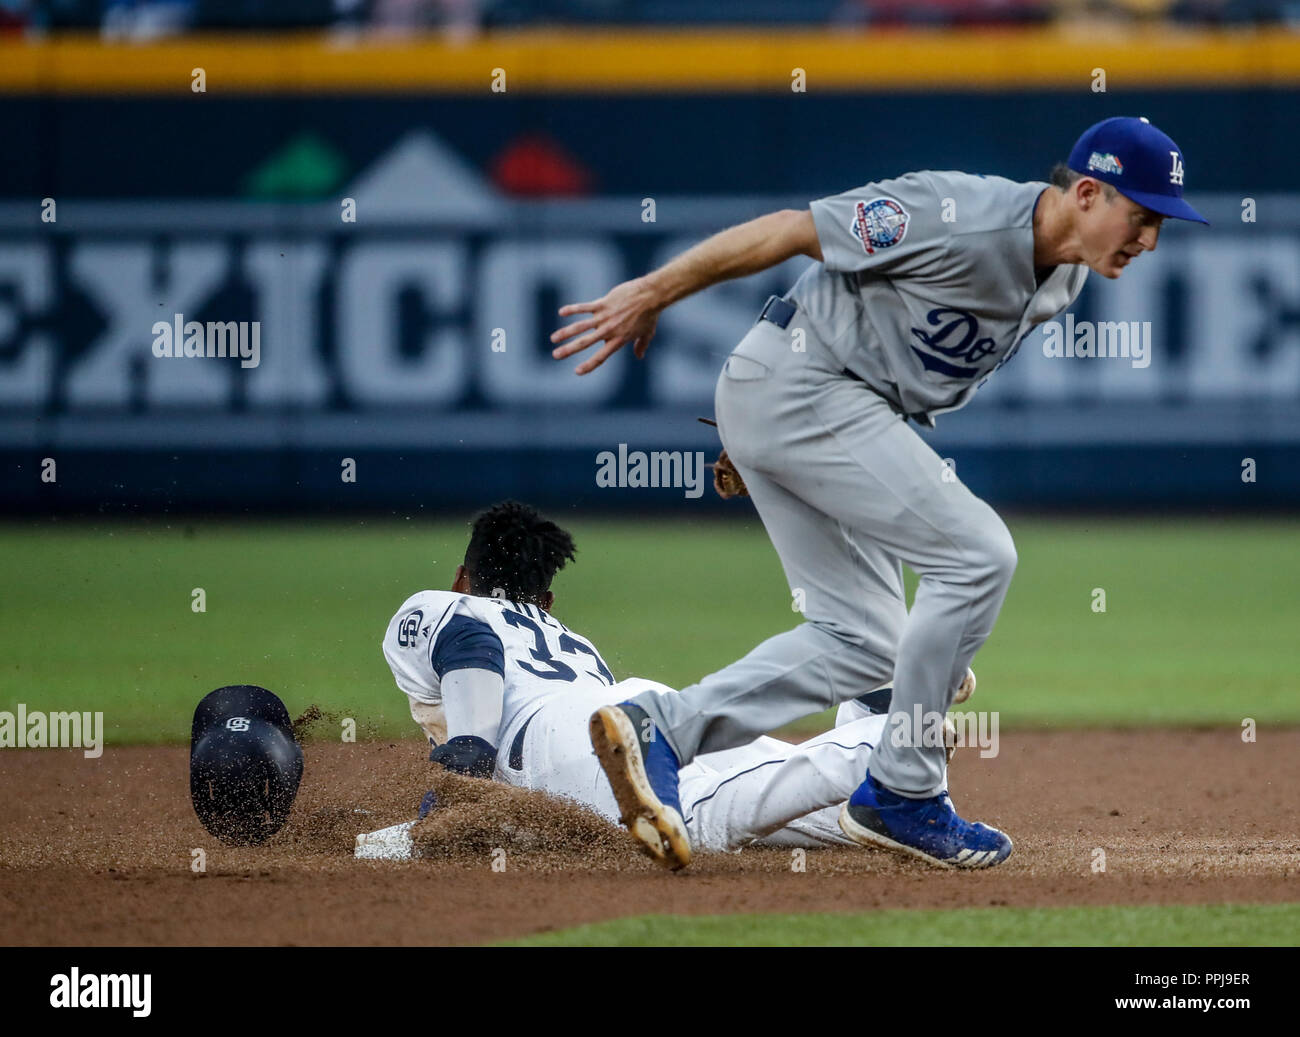 Franchy Cordero and Chase Utley. Baseball action during the Los Angeles Dodgers game against San Diego Padres, the second game of the Major League Bas - Stock Image